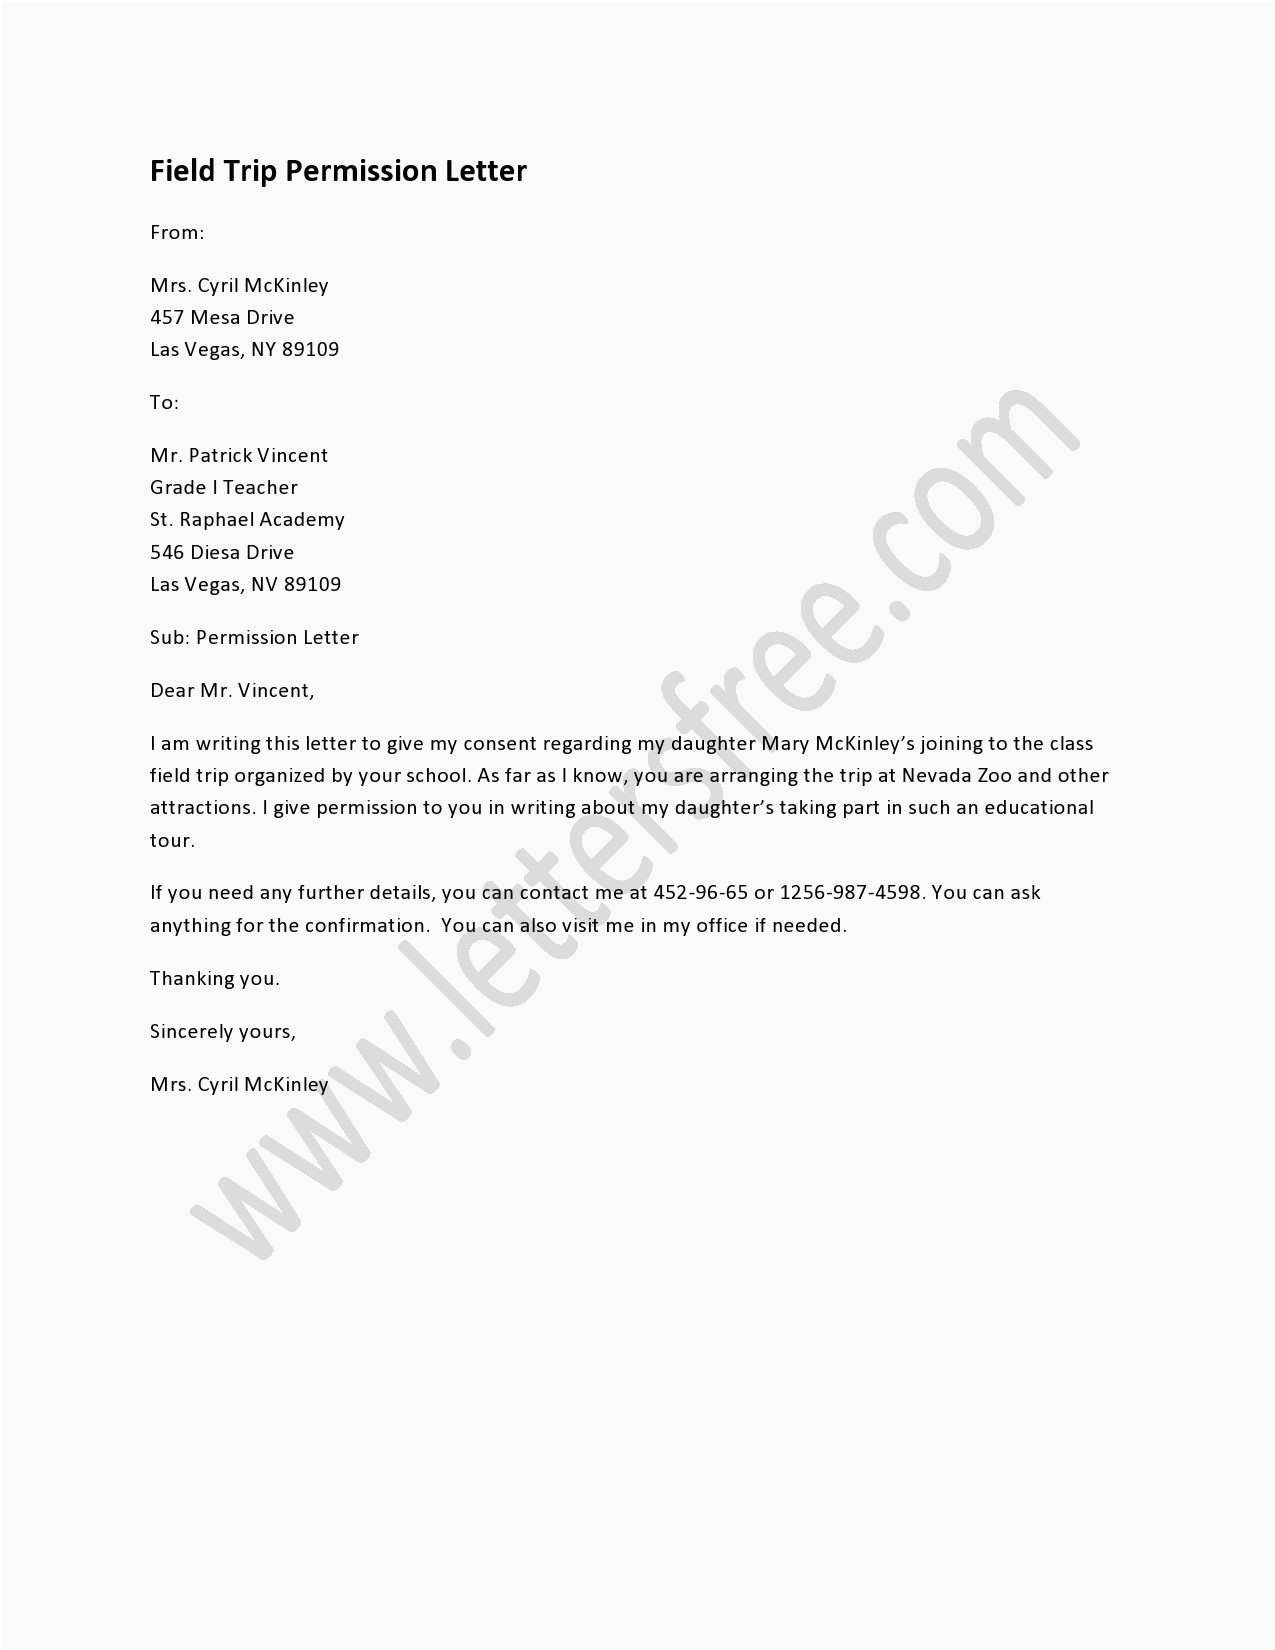 Sample Travel Consent Letter Sample Field Trip Permission Letter Sample Permission Letters Sample